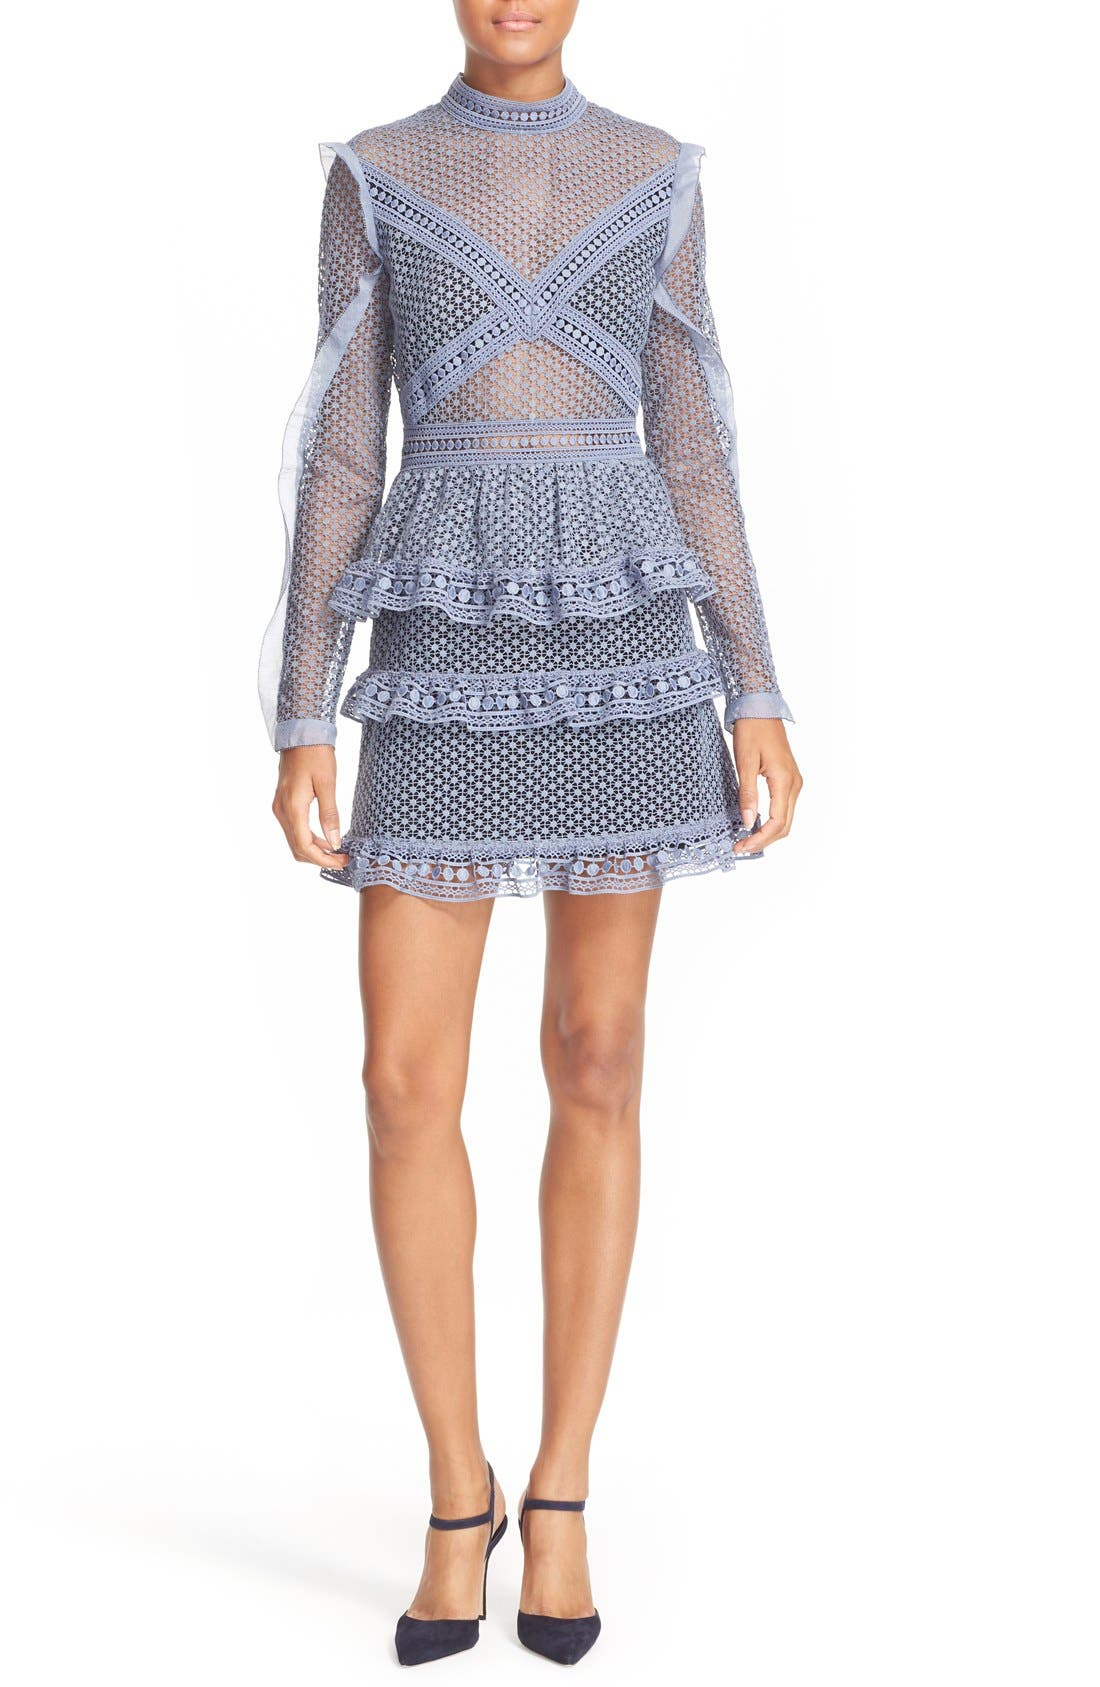 Alternate Image 1 Selected - Self-Portrait Dot Lace Tiered Minidress